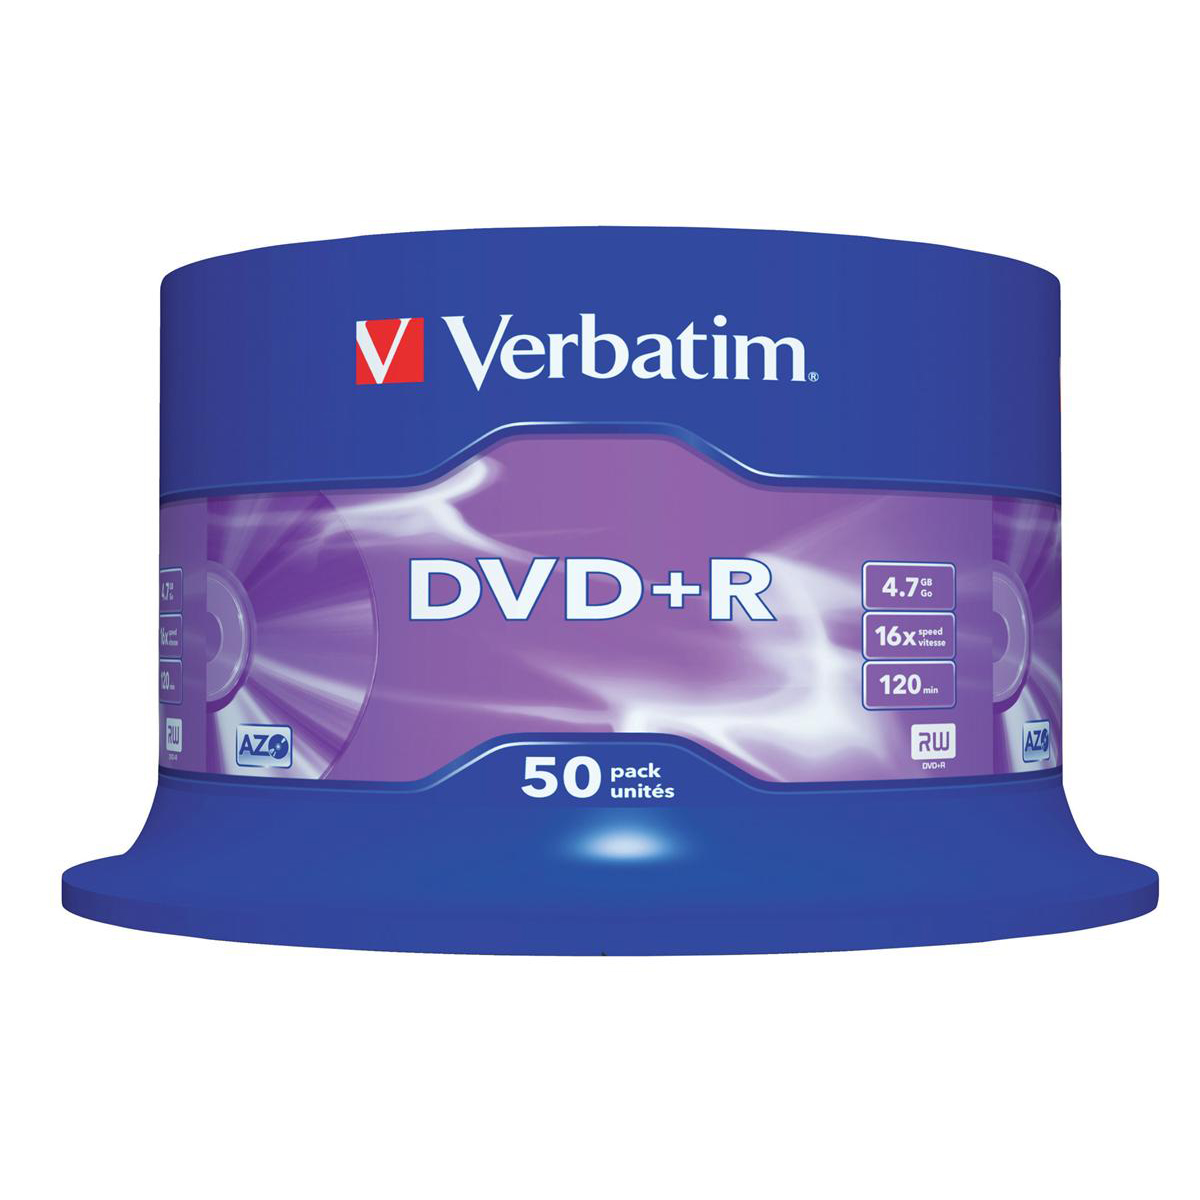 Verbatim DVD+R Recordable Disk Write-once Spindle 16x Speed 120min 4.7Gb Ref 43550 Pack 50